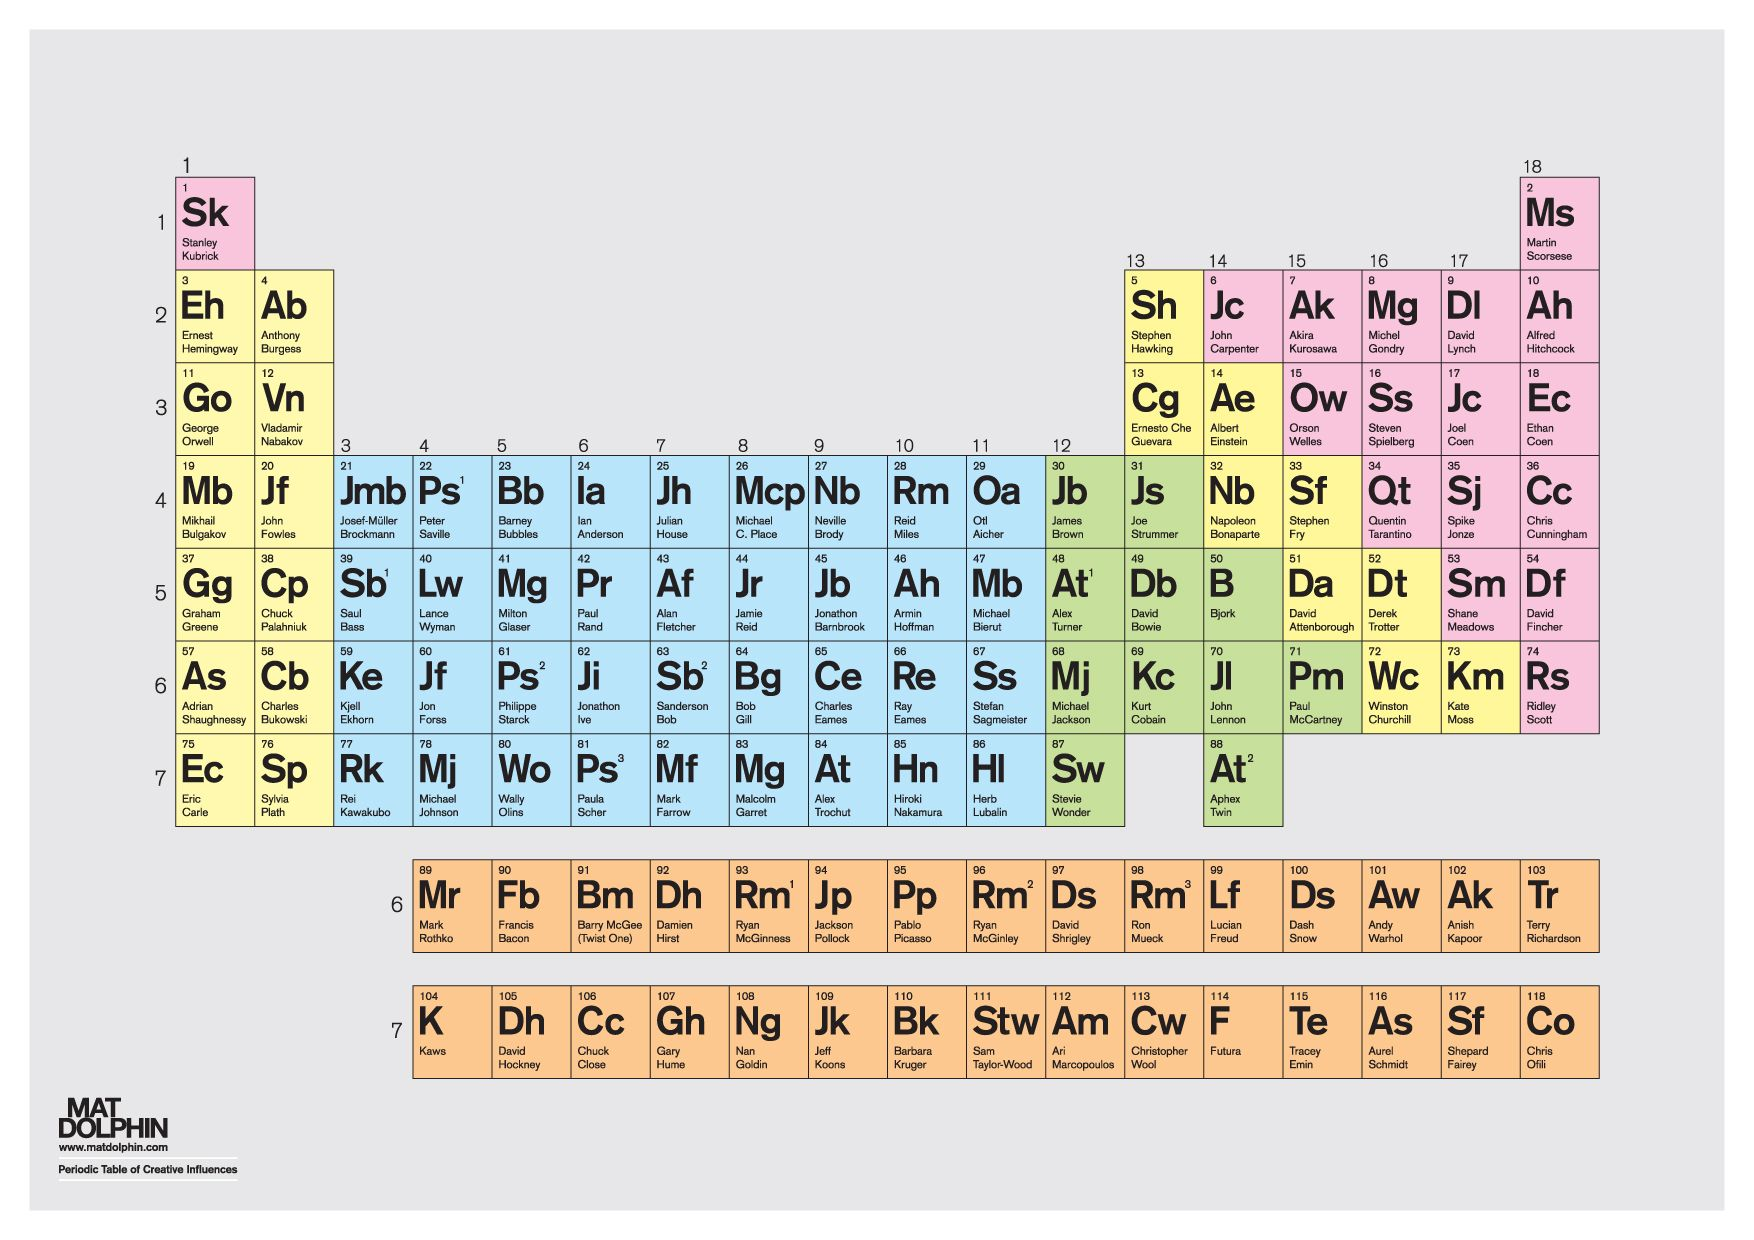 Periodic table of design influences mat dolphin periodic tables periodic table of design influences mat dolphin gamestrikefo Image collections